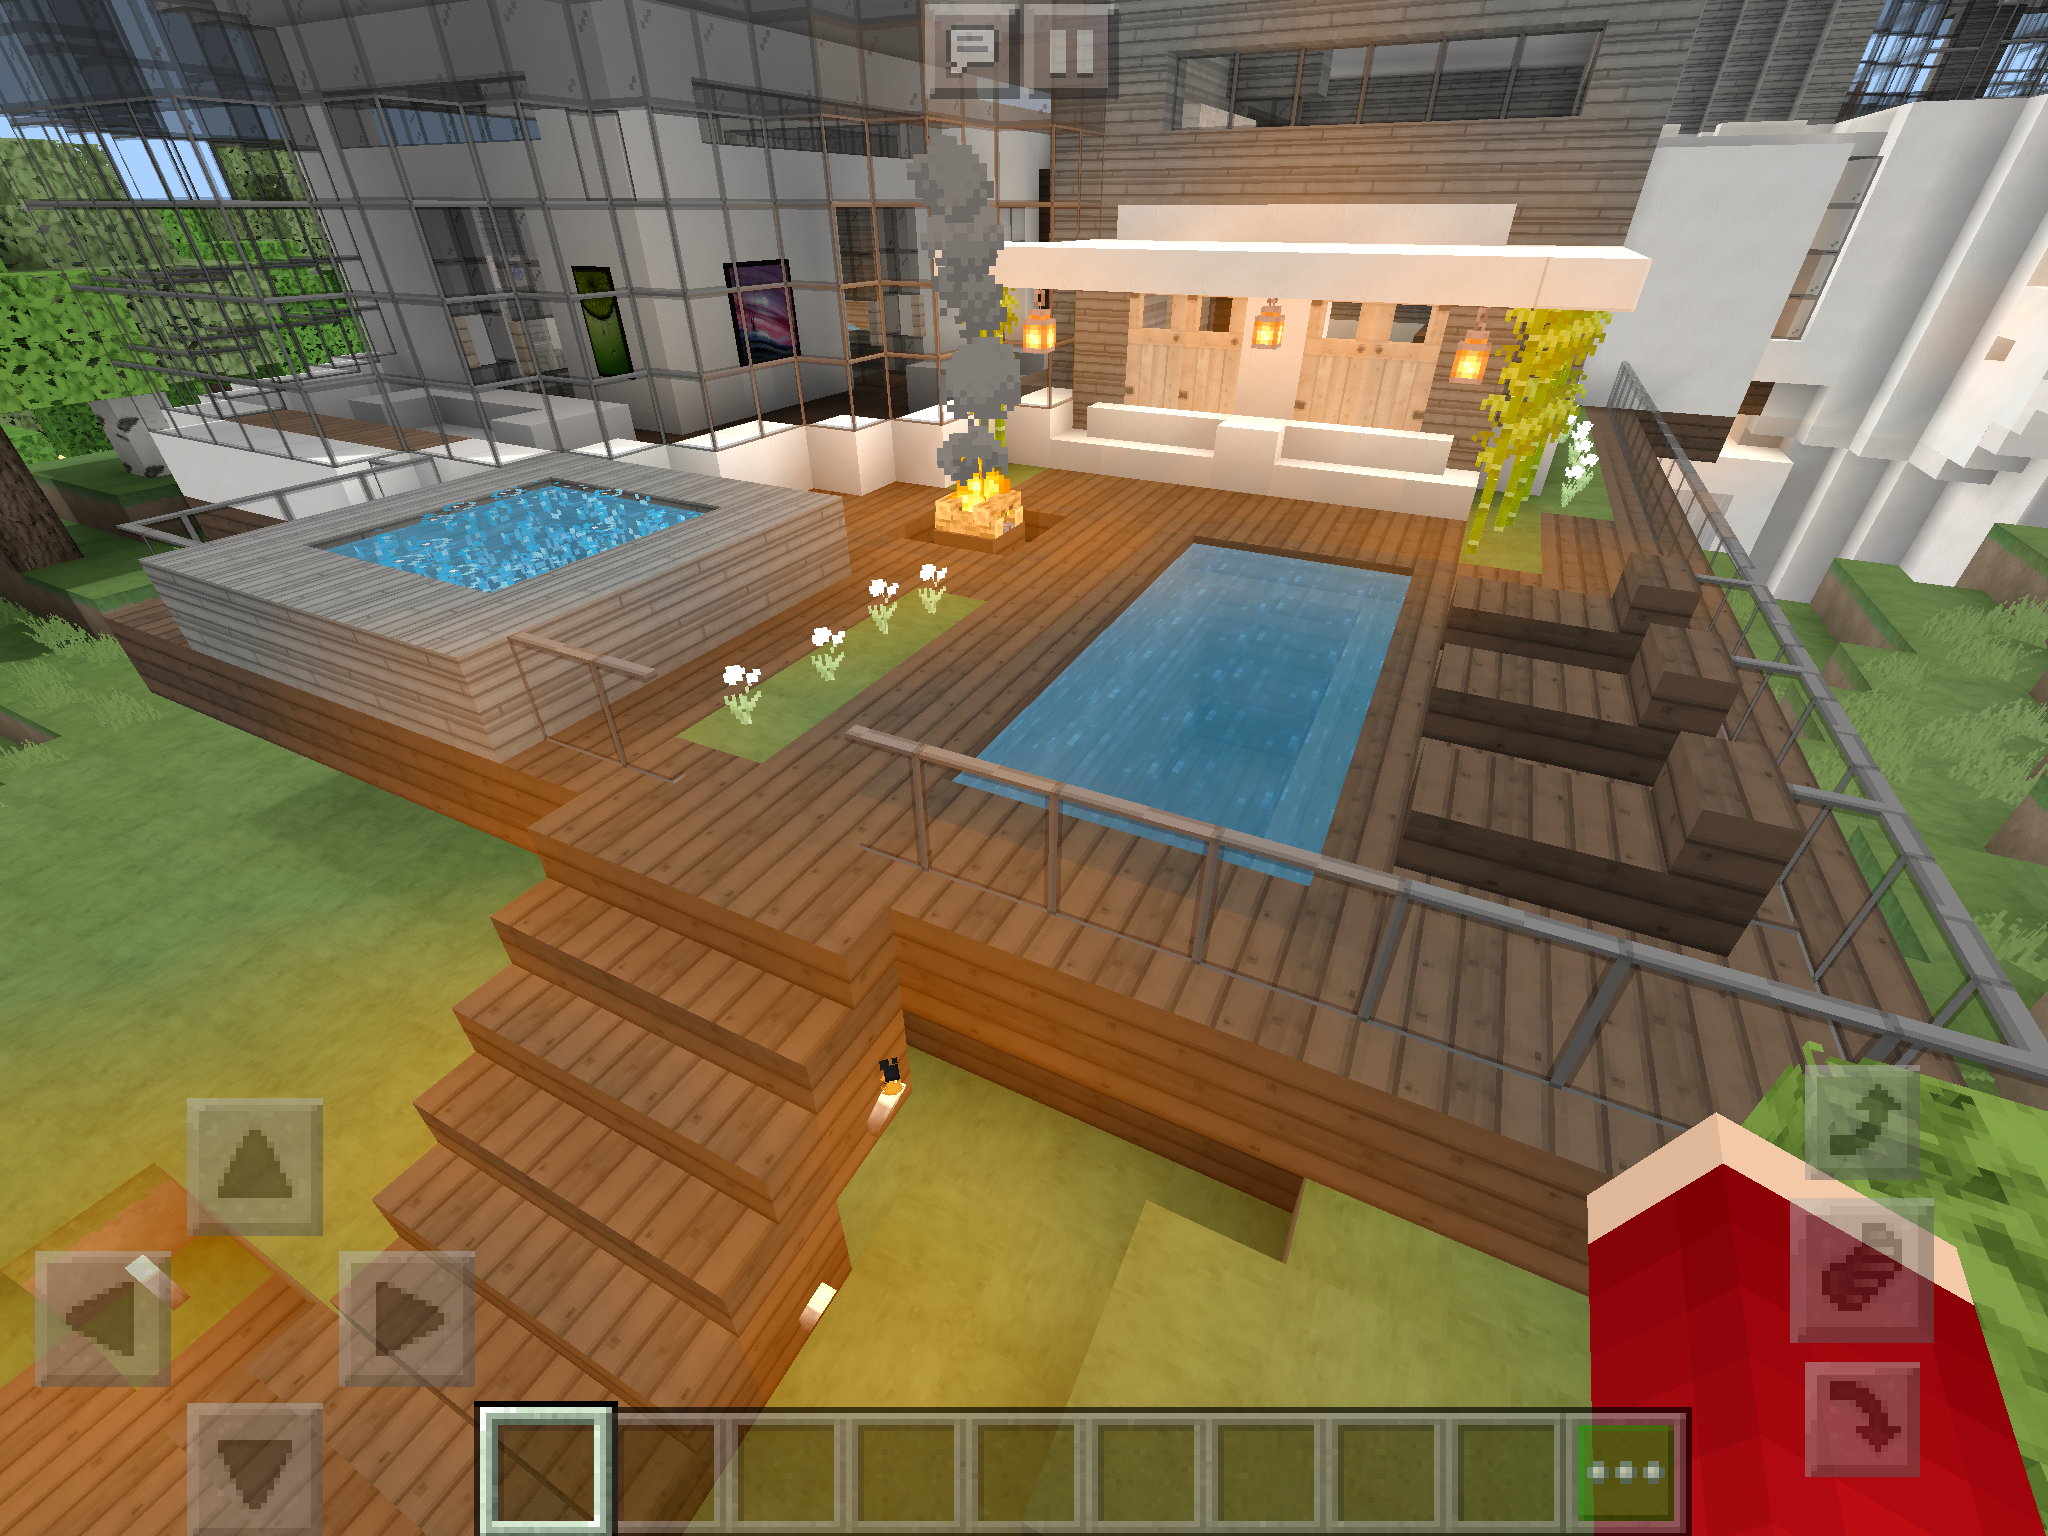 My Awesome Deck With A Lap Pool Fire Pit Hot Tub Sun Chairs And Bamboo Walls Minecraft Minecraft Bedroom Minecraft Room Minecraft Houses